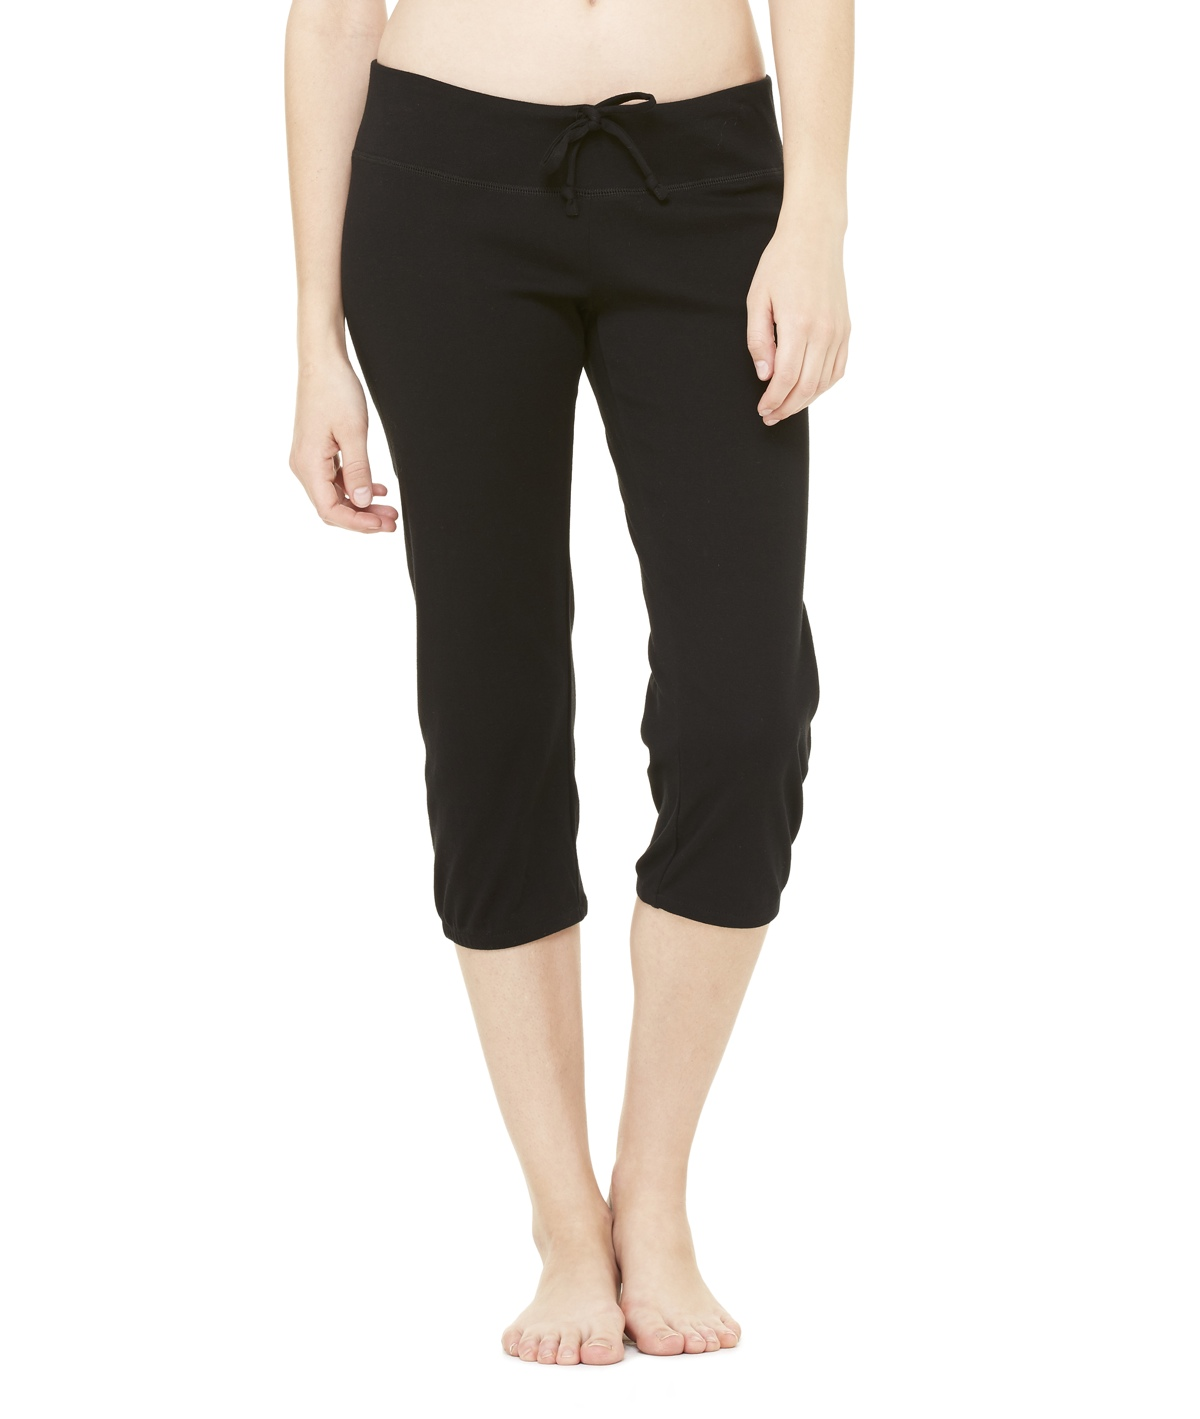 816 Bella + Canvas Ladies' Capri Scrunch Pant